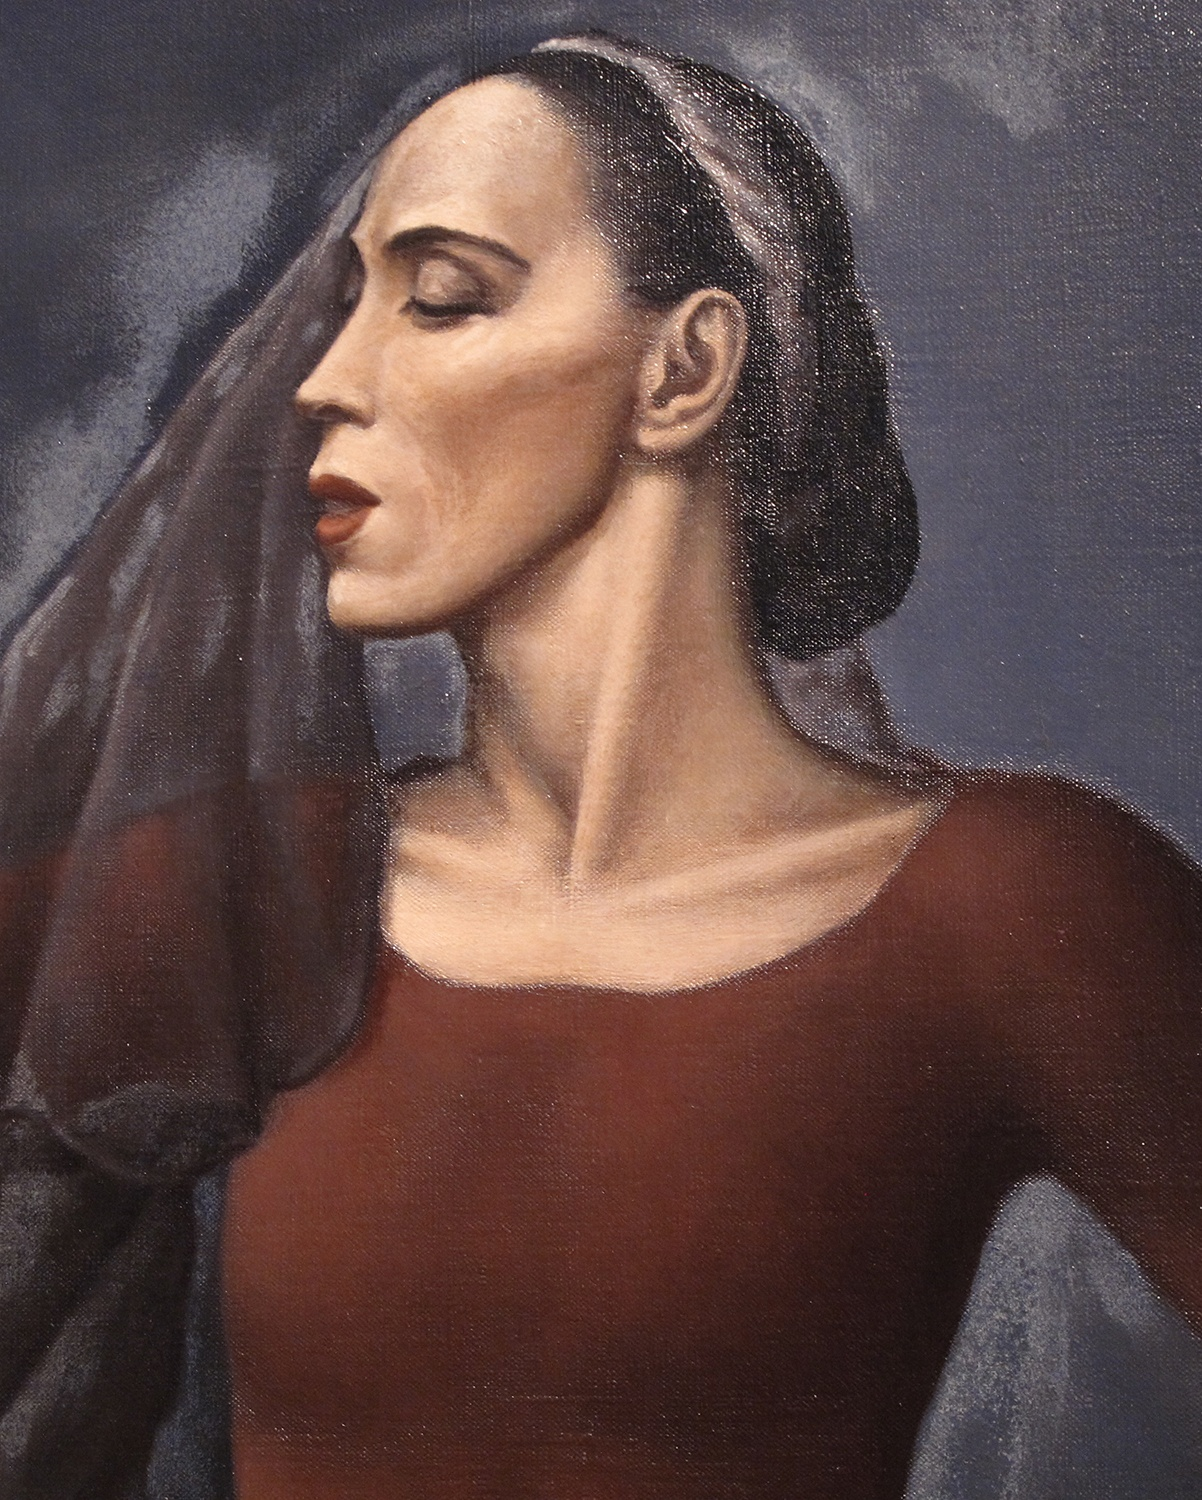 Detail, Martha Graham, by Paul Meltsner, oil on canvas, 1938. Courtesy of the National Portrait Gallery, Smithsonian Institution.